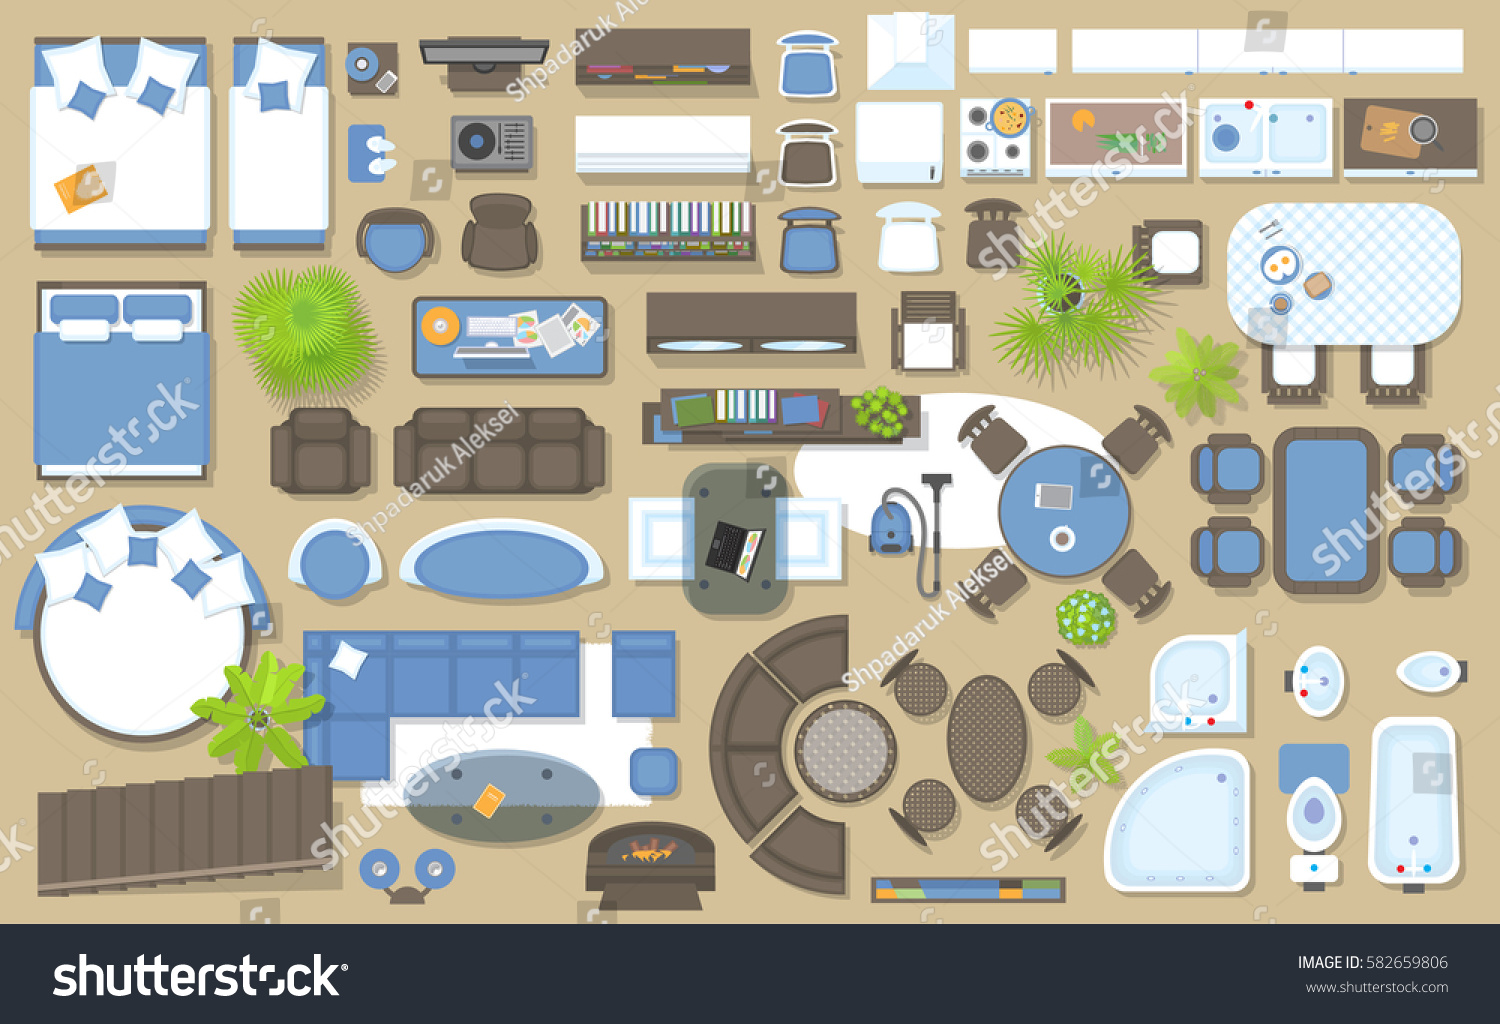 Icons set interior top view isolated stock vector for Plan out your room online free